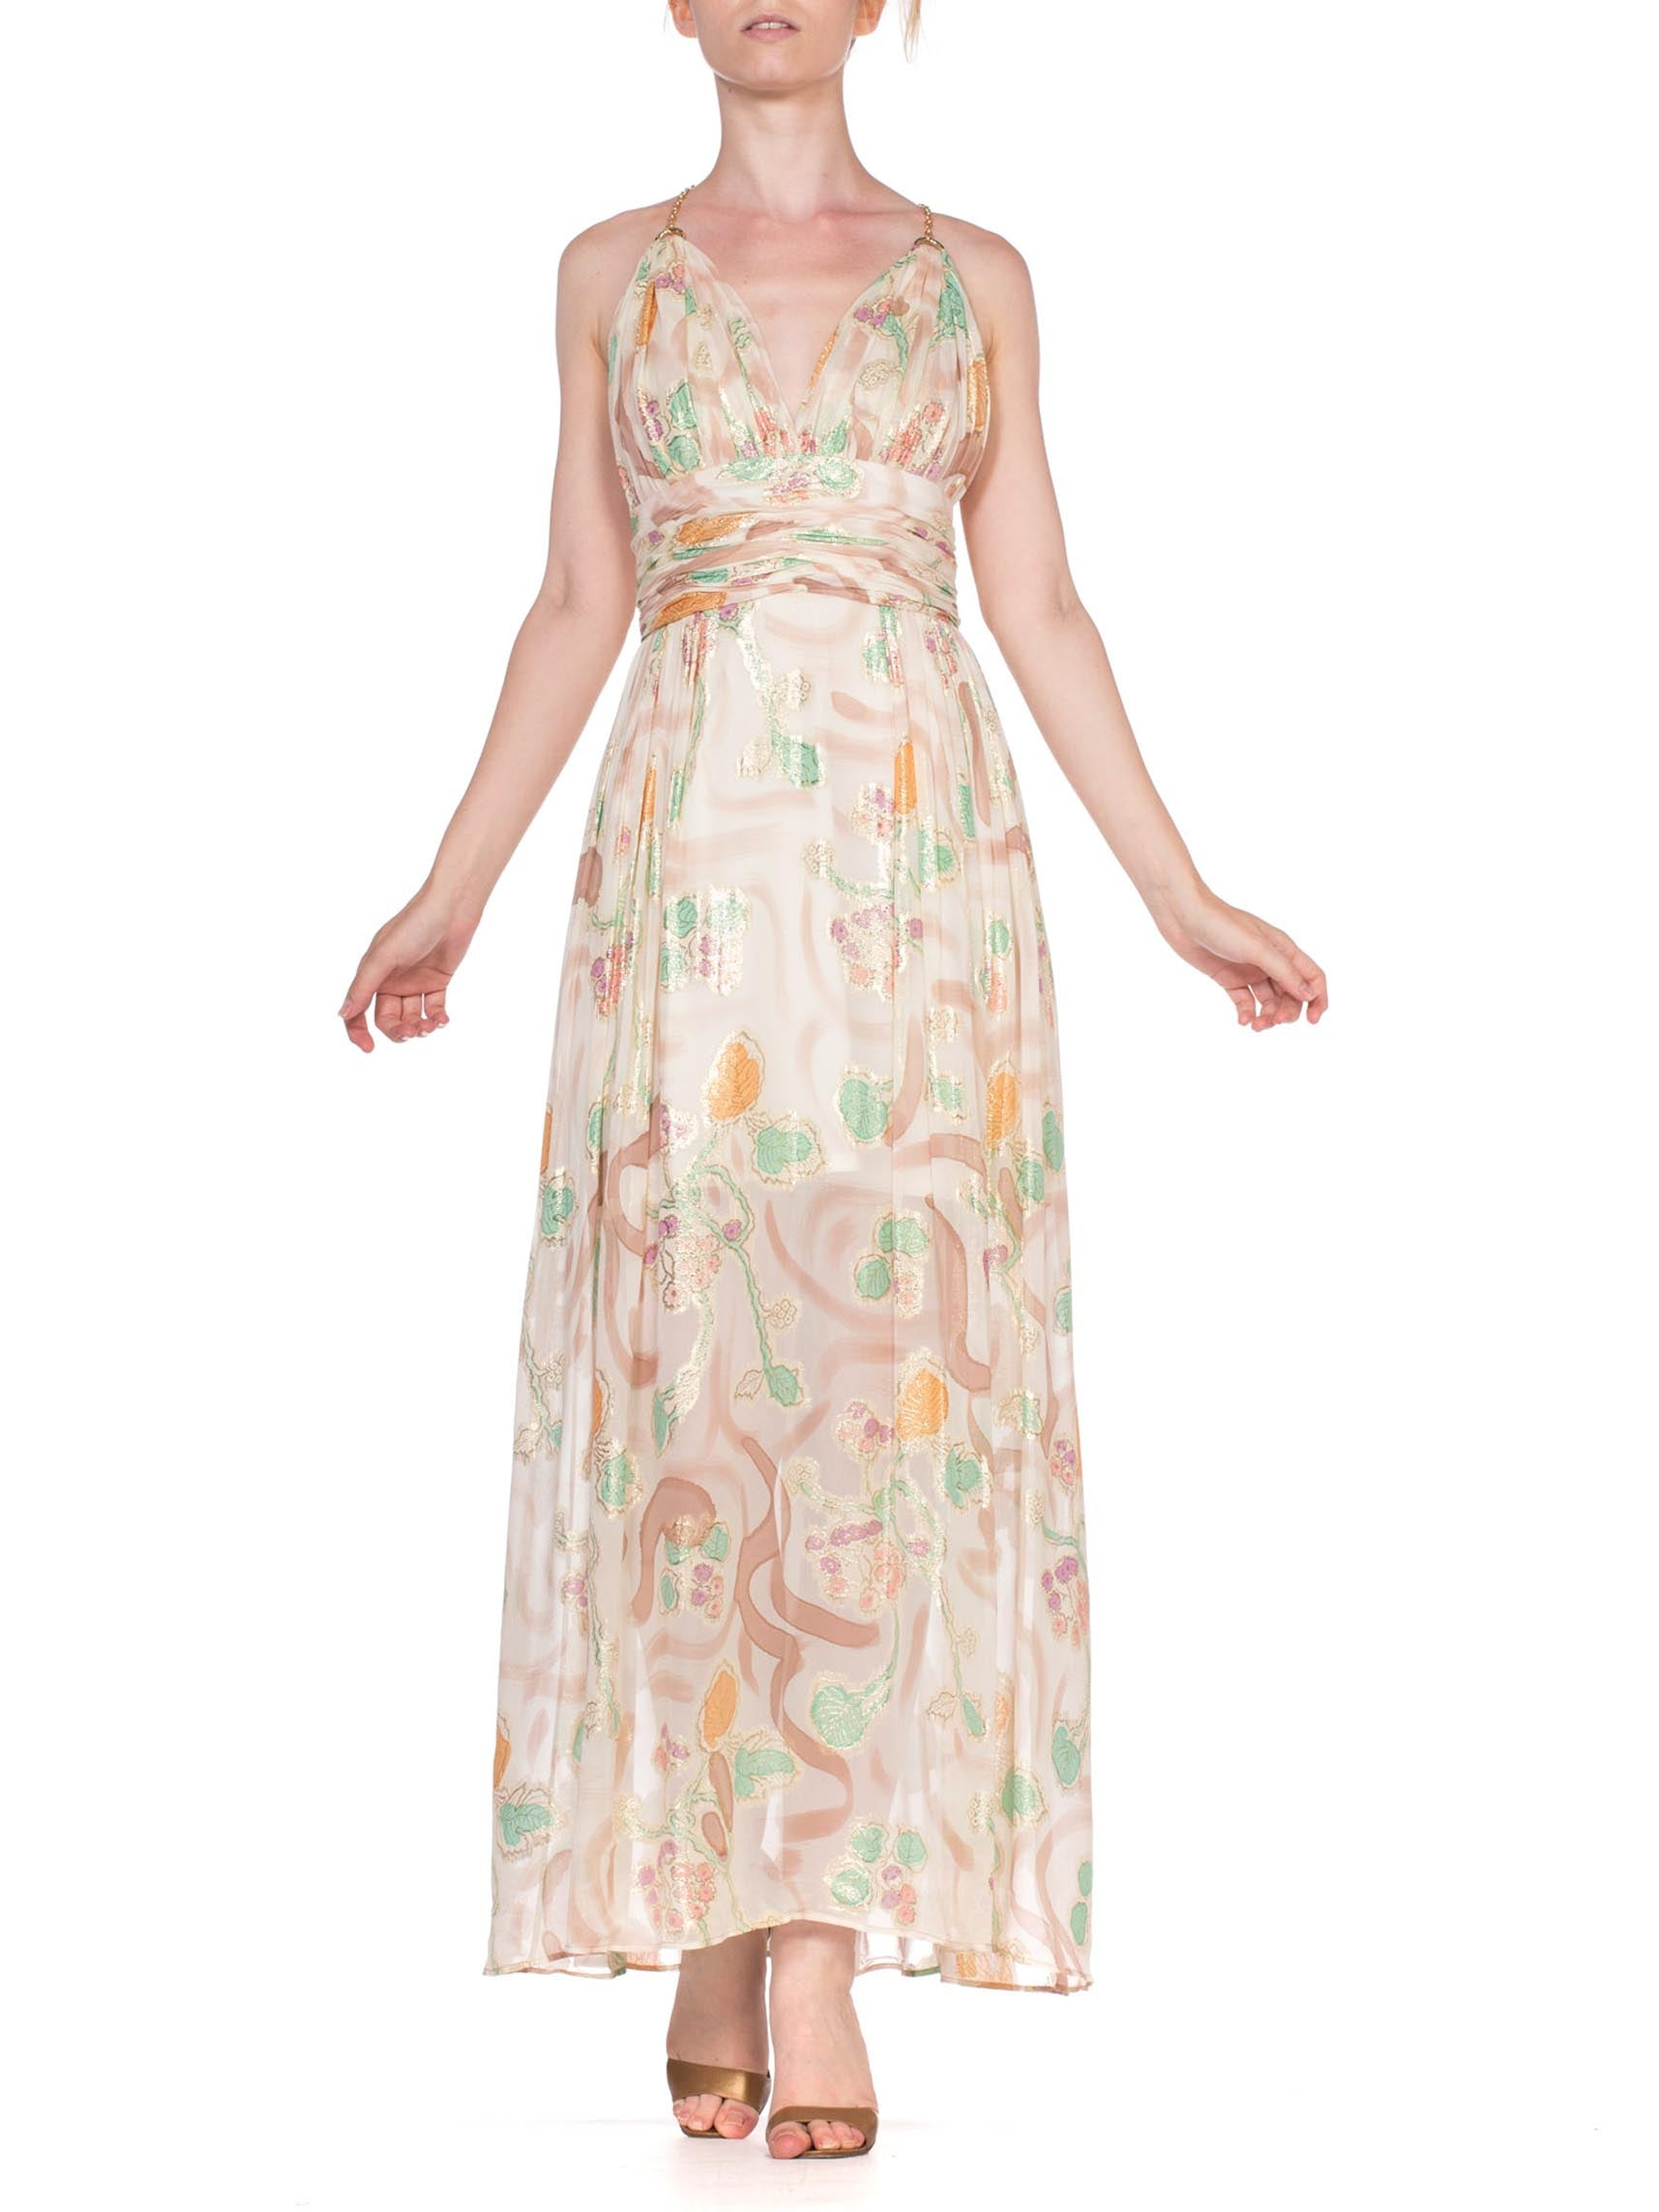 MORPHEW COLLECTION Hand Painted Silk Lurex Fil Coupé  Chiffon Gown With Gold Chain Straps